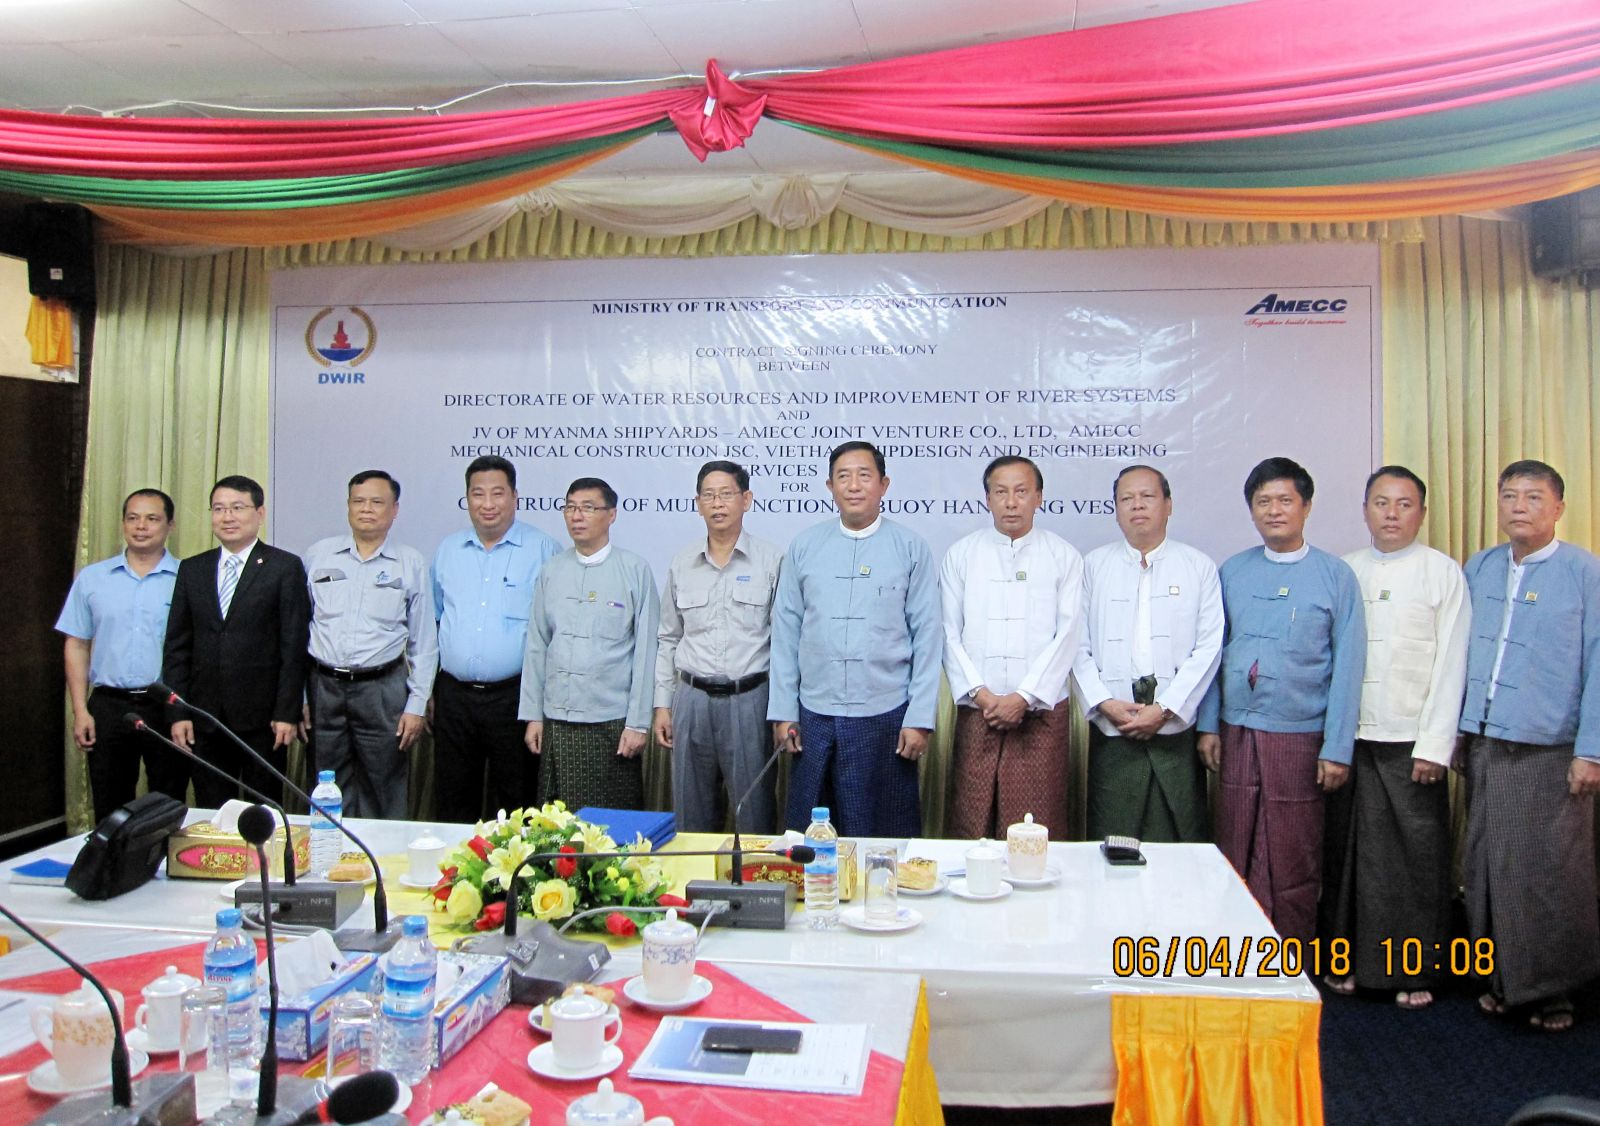 CONTRACT SIGNING CEREMONY HELD TO CONSTRUCT THE MULTIFUNCTIONAL BUOY